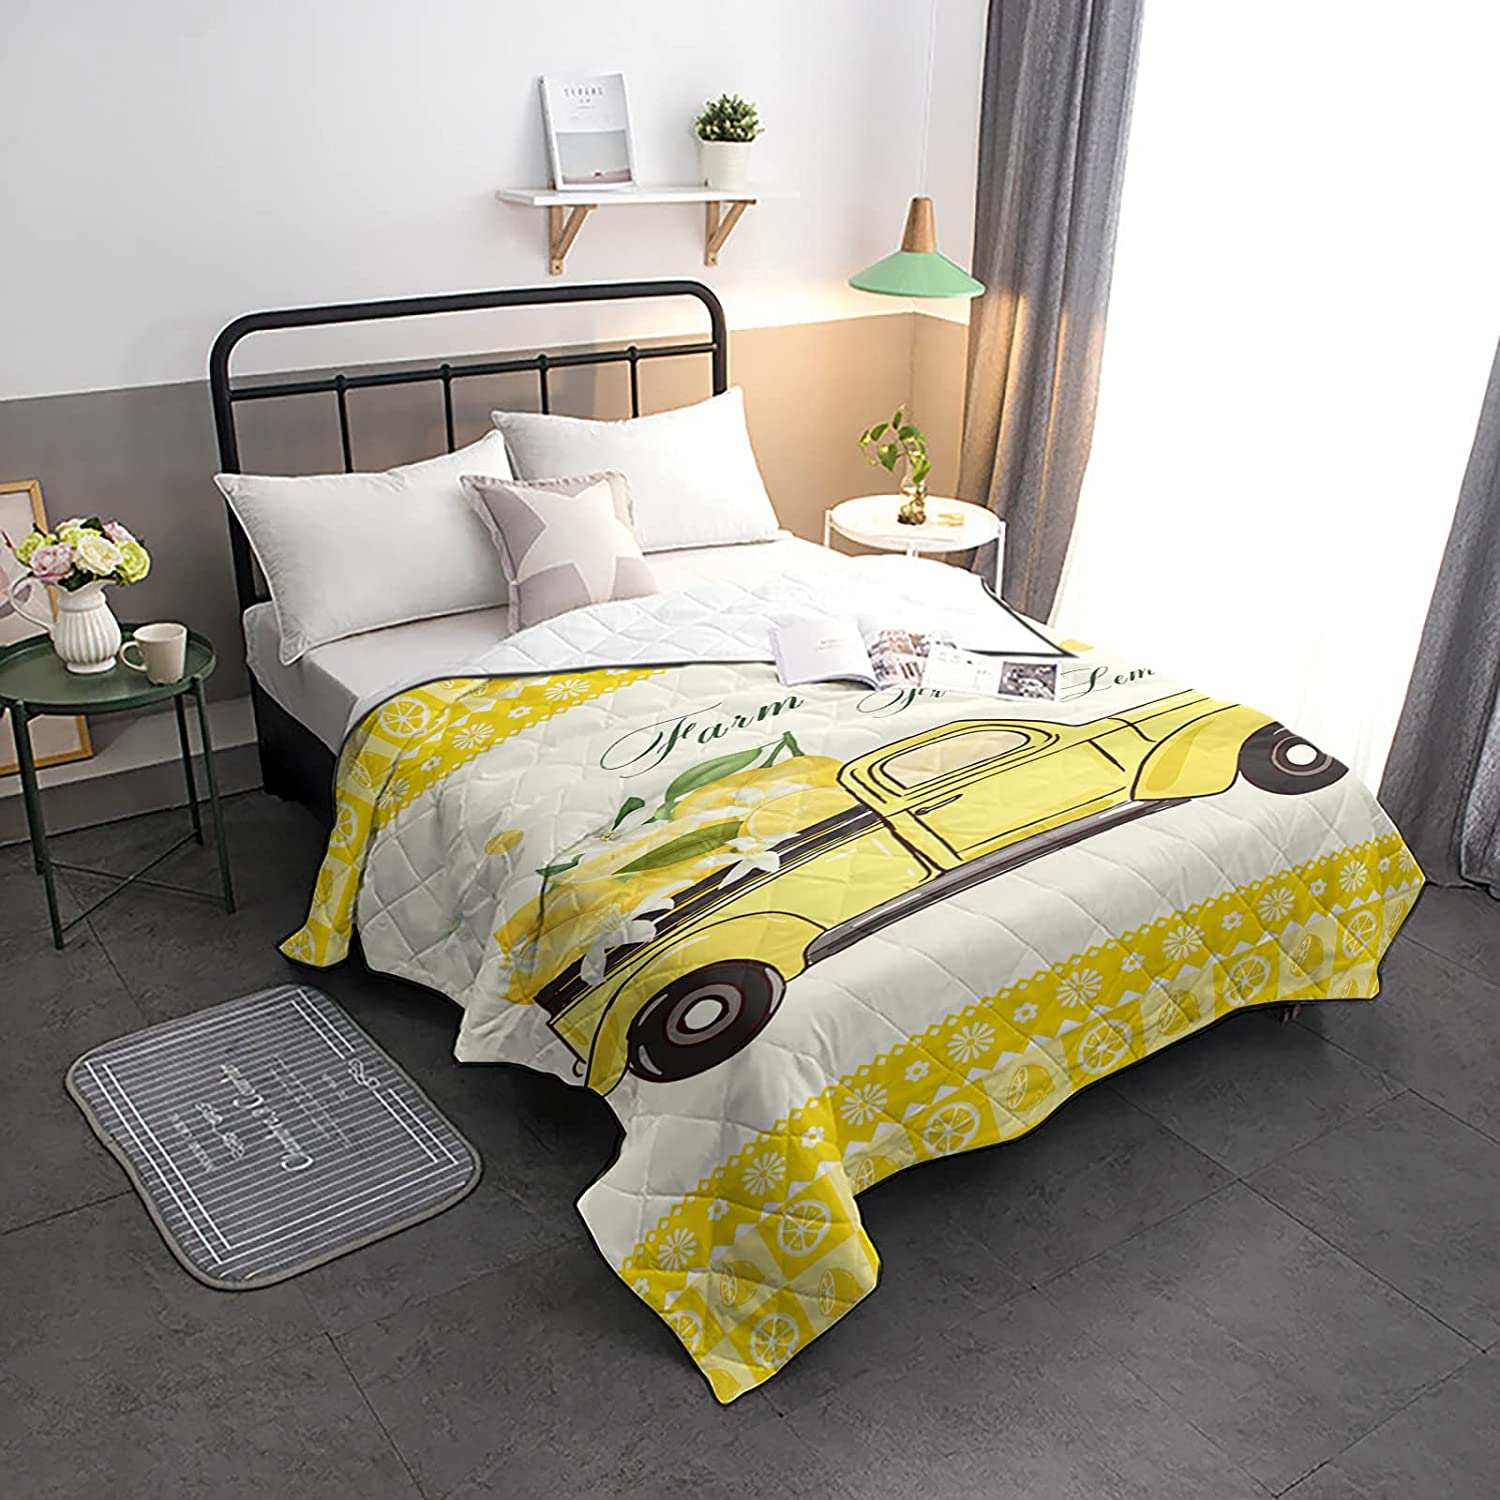 HELLOWINK Bedding Comforter Duvet Lighweight Twin Size-Soft Cheap mail order sales SEAL limited product Qu